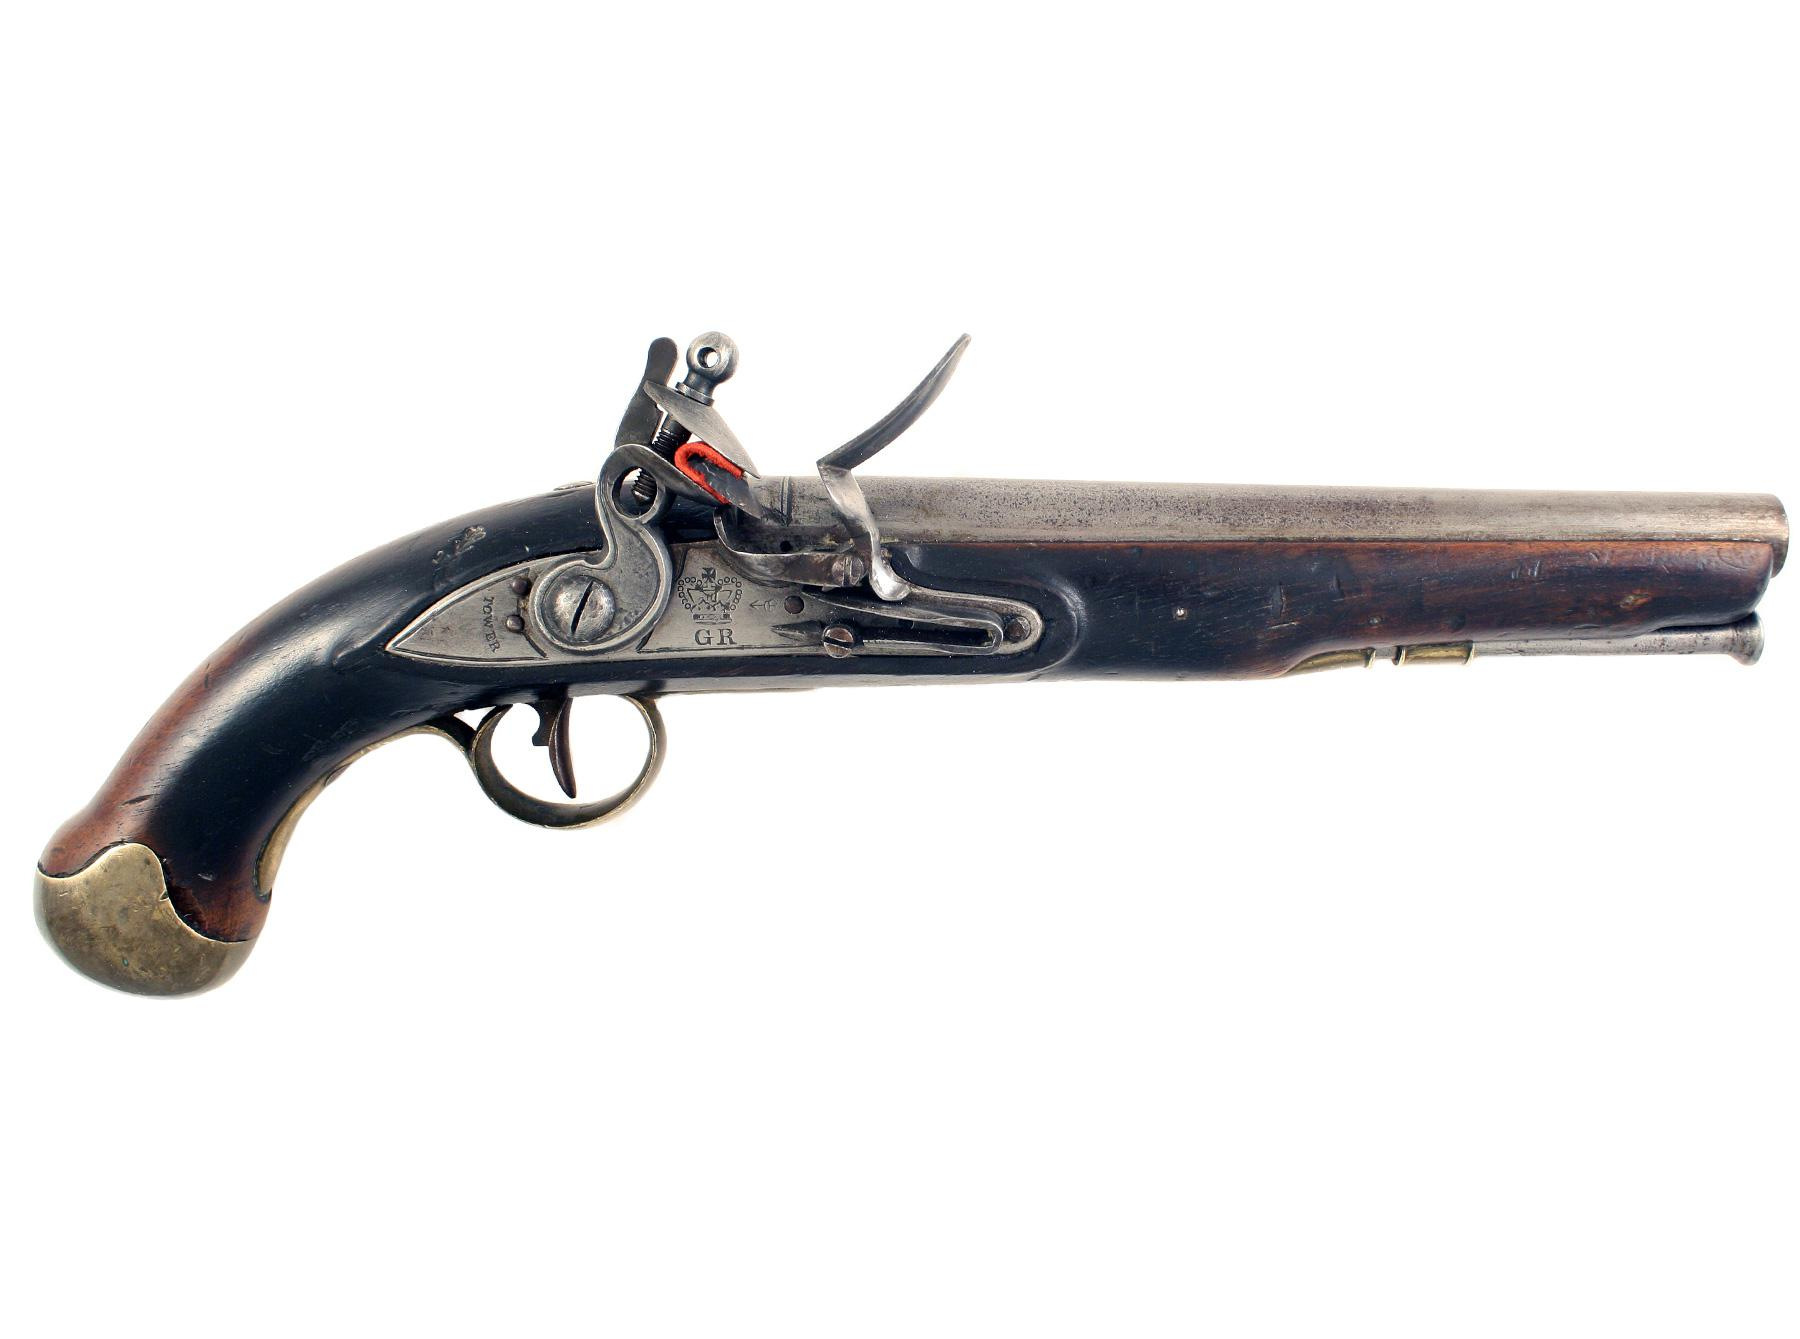 A Very Rare Pattern 1821 Sea Service Pistol